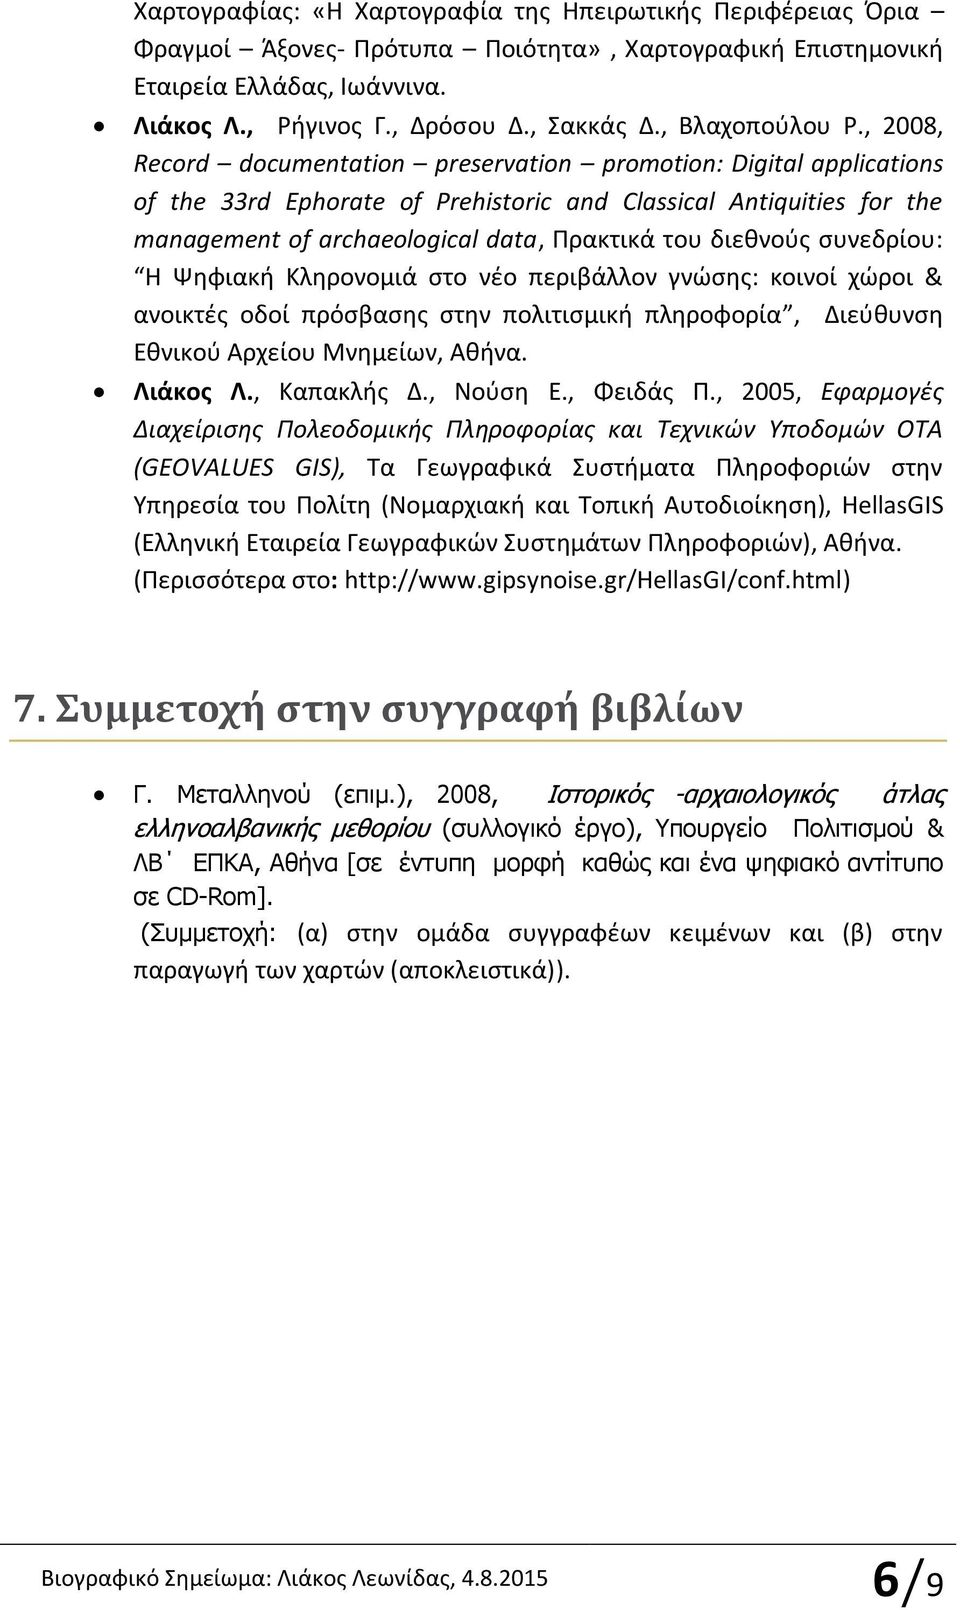 , 2008, Record documentation preservation promotion: Digital applications of the 33rd Ephorate of Prehistoric and Classical Antiquities for the management of archaeological data, Πρακτικά του